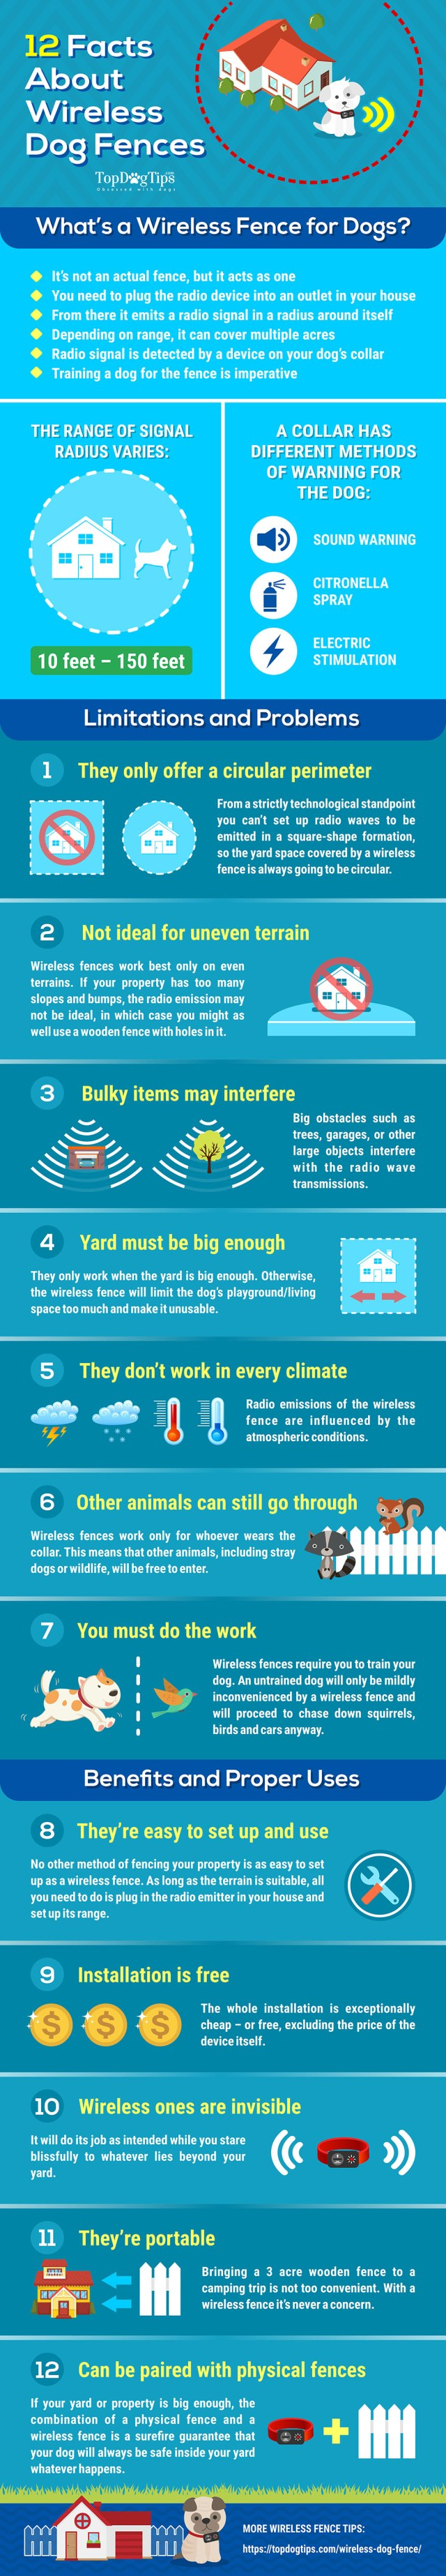 12 Pros and Cons of Wireless Dog Fence [Infographic]